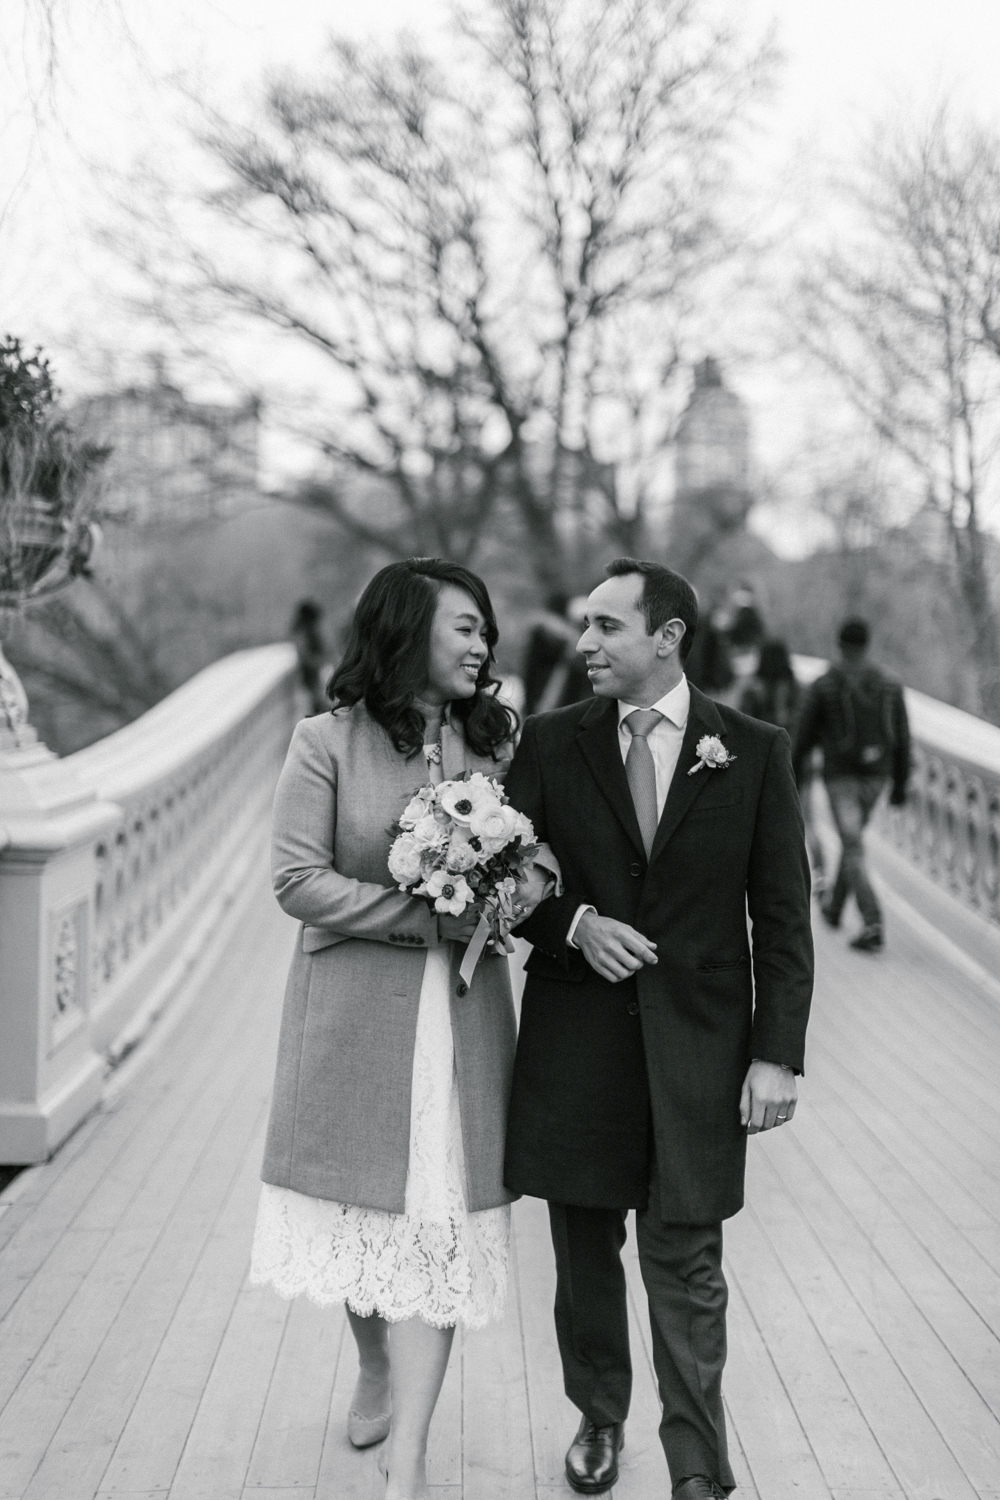 Black and white portrait of newlyweds walking together